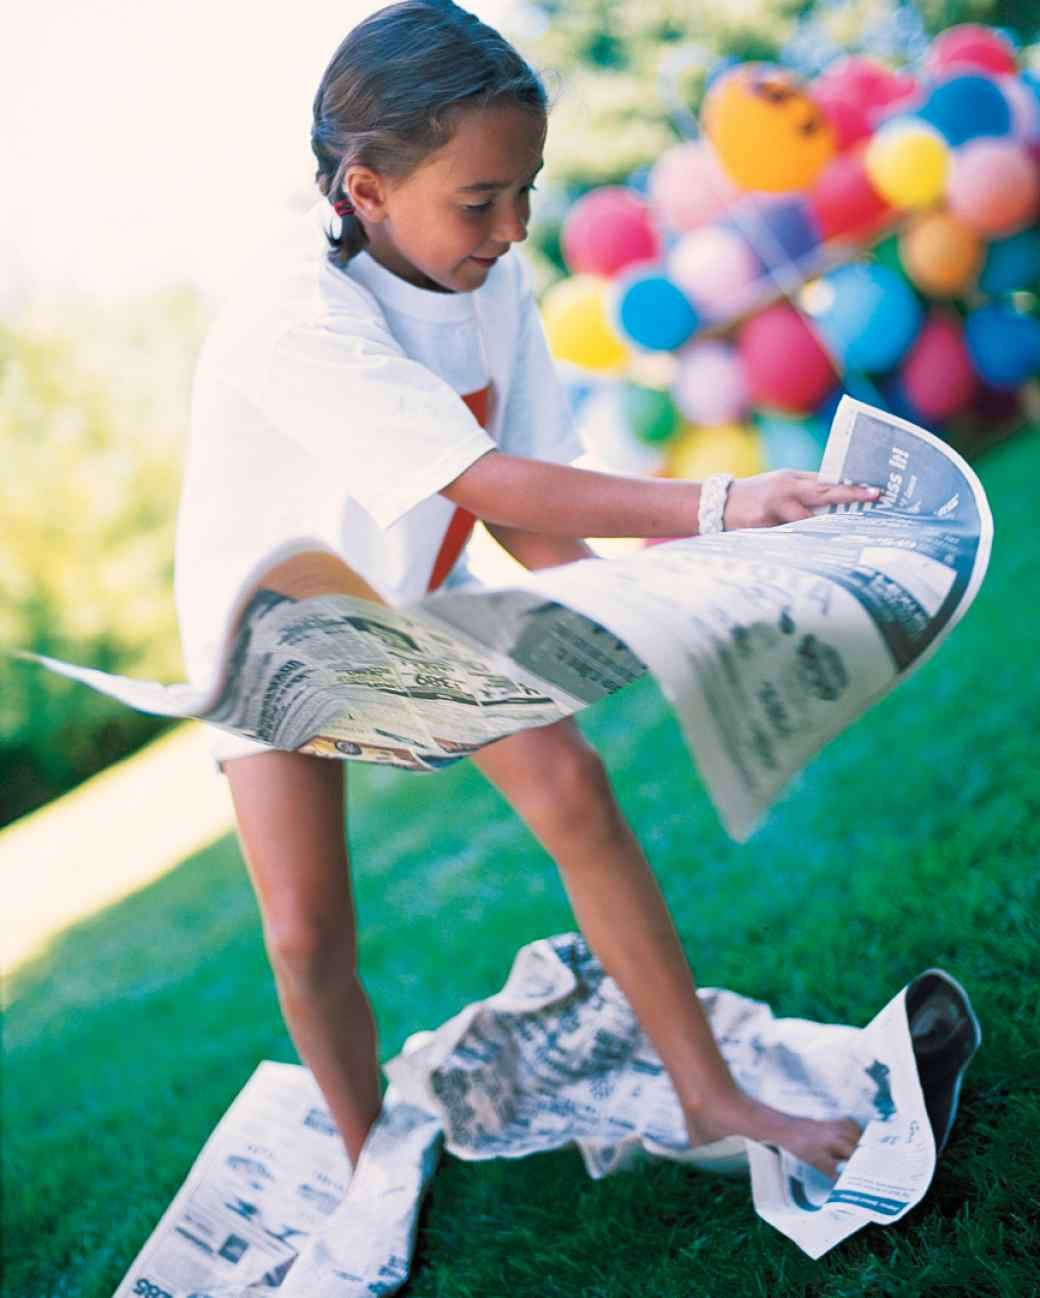 Juegos Tradicionales Al Aire Libre How To Throw An Obstacle Course Party Camp Activities